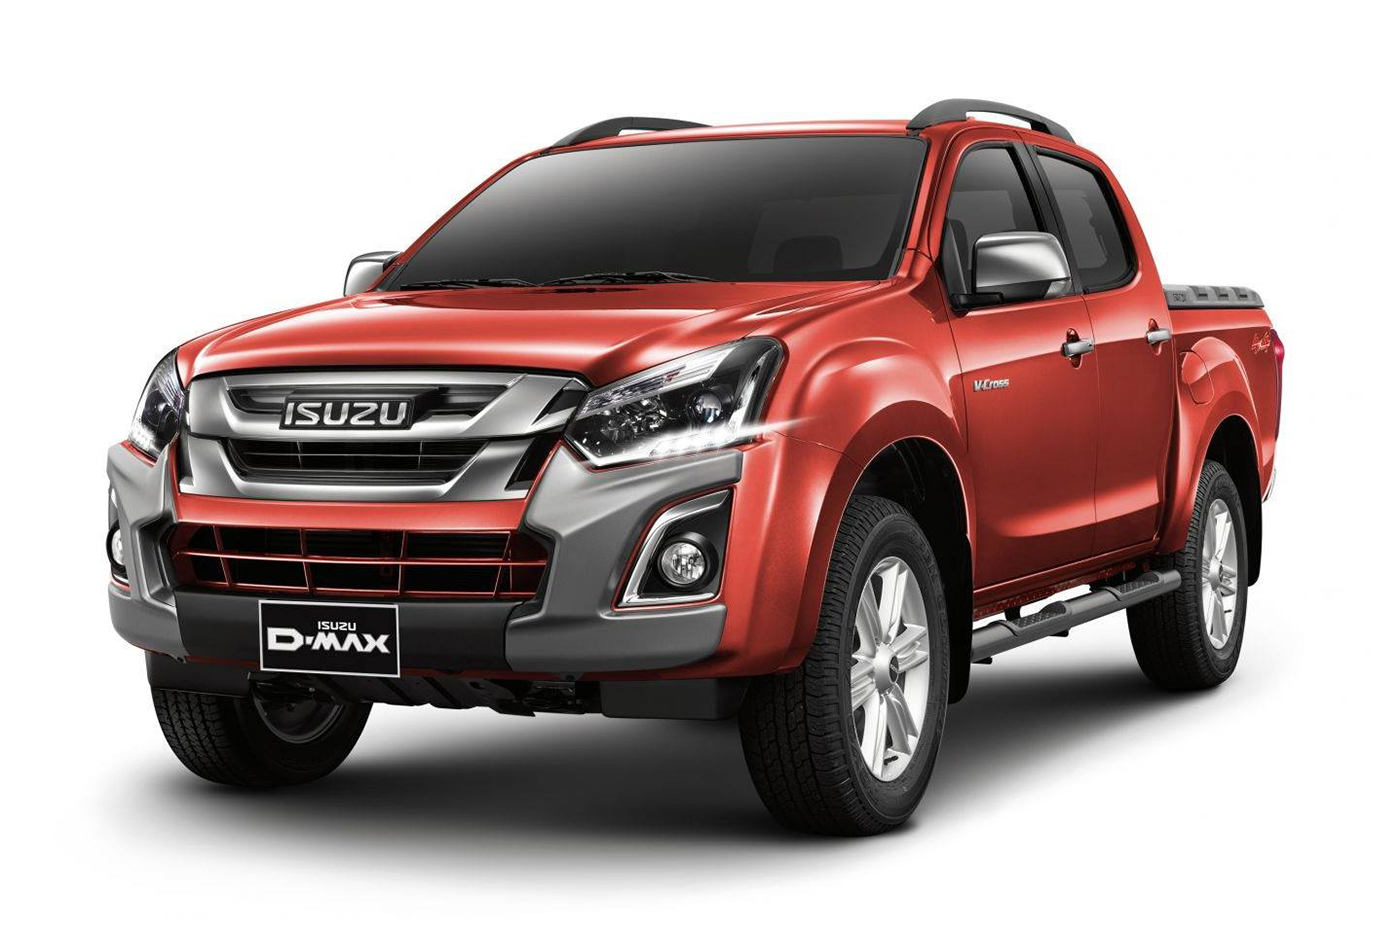 isuzu-d-max-v-cross-limited-edition-front-three-quarters.jpg